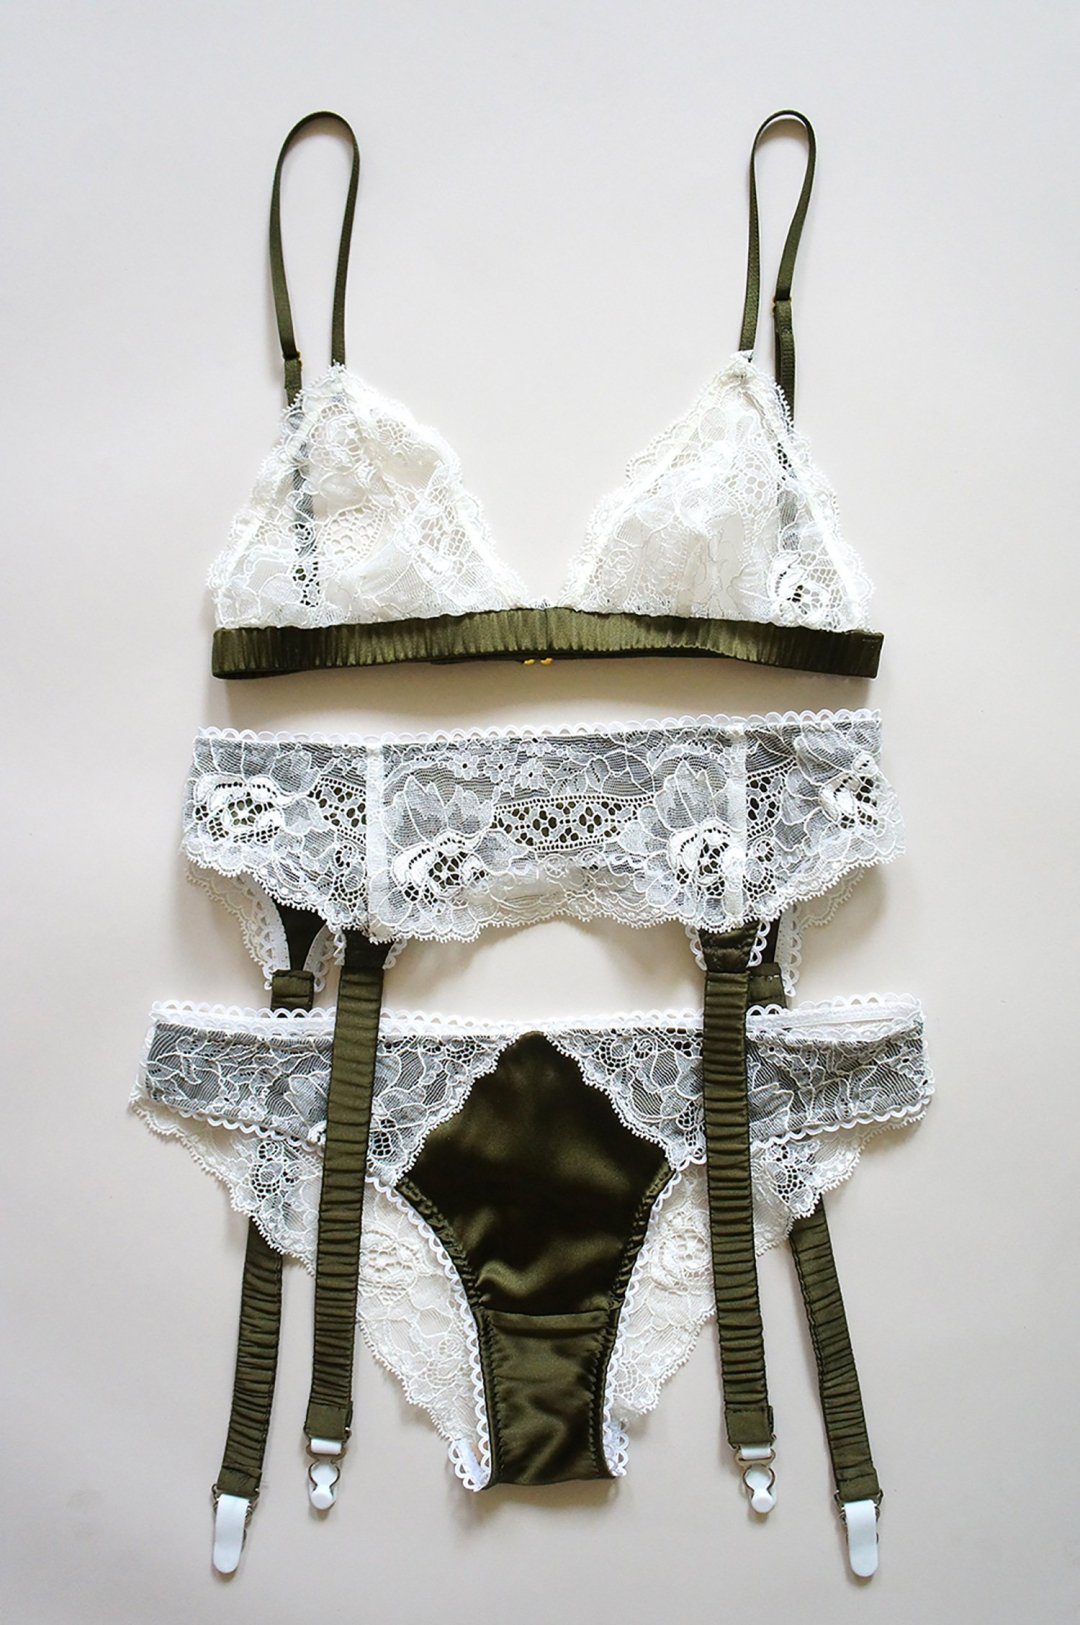 426172d6994ac Curated image with White lace and olive silk bralette from Elma Lingerie